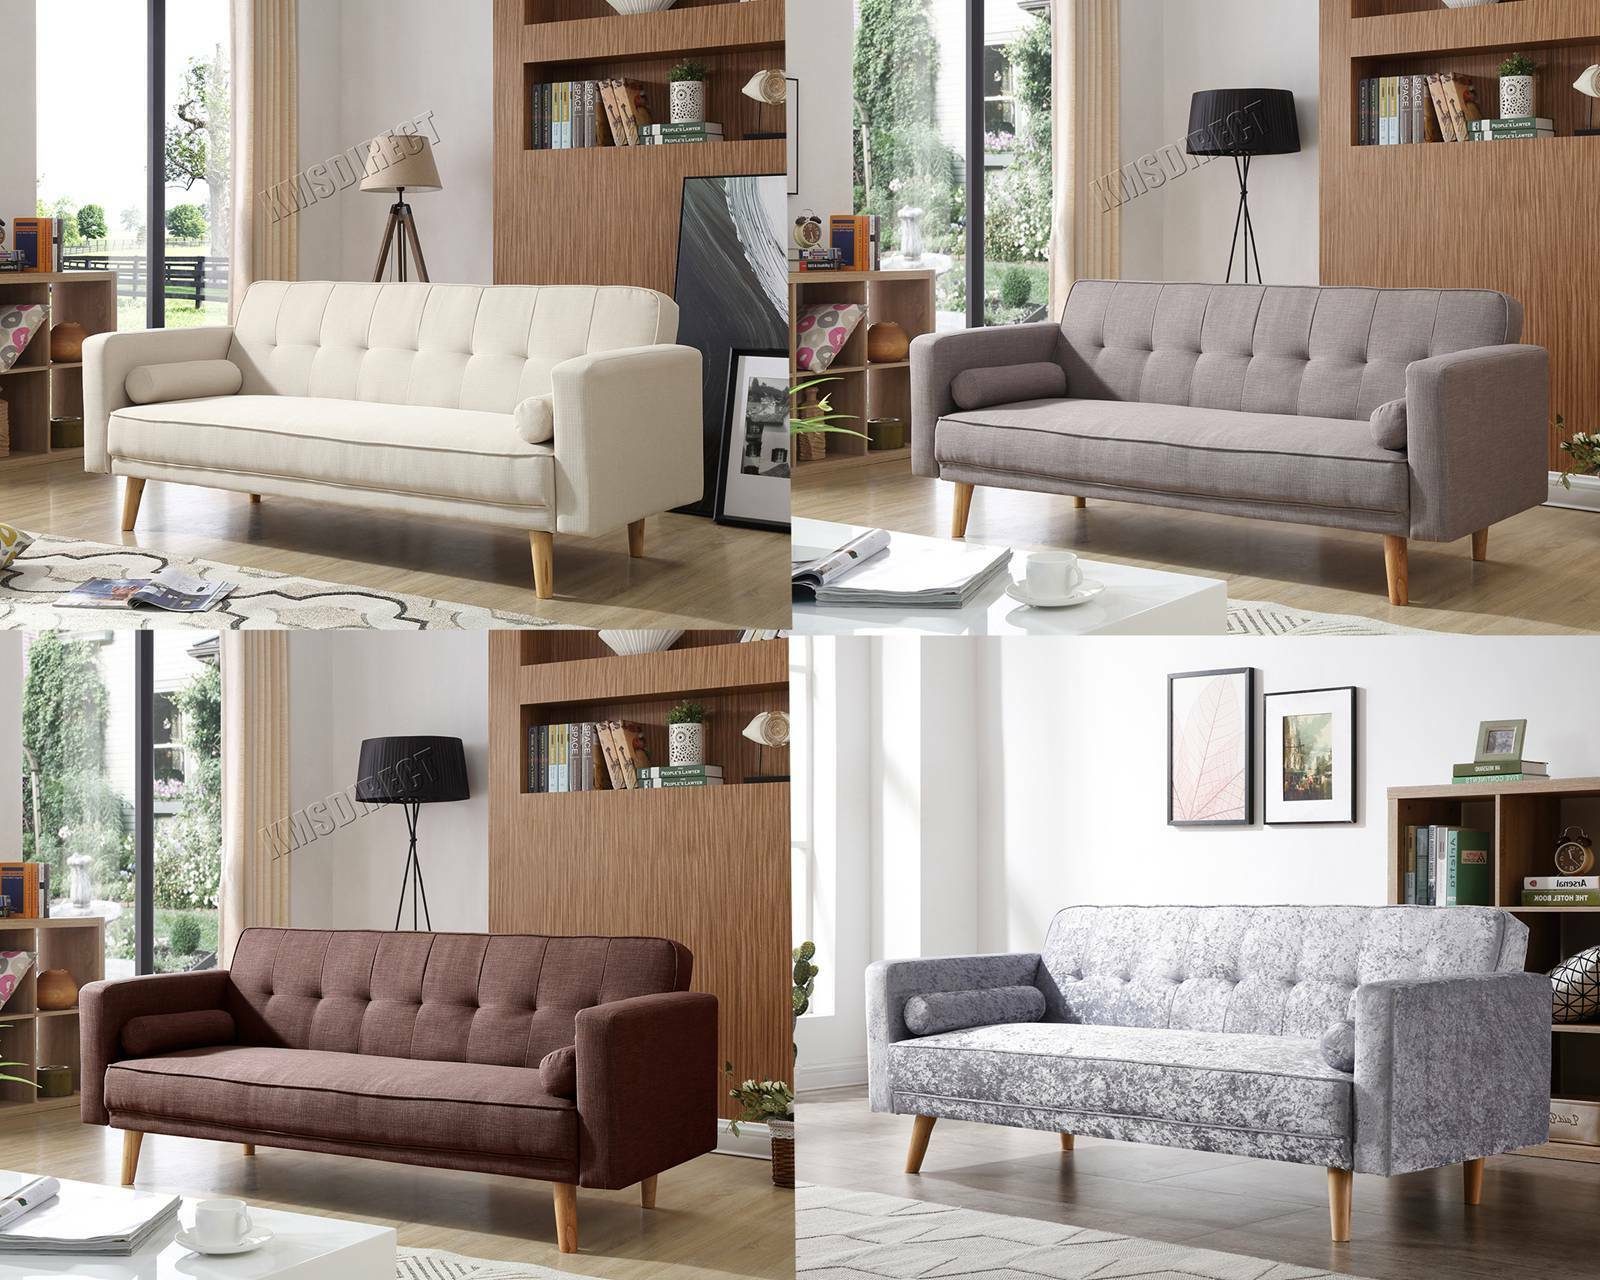 westwood fabric sofa bed 3 seater couch luxury modern home. Black Bedroom Furniture Sets. Home Design Ideas